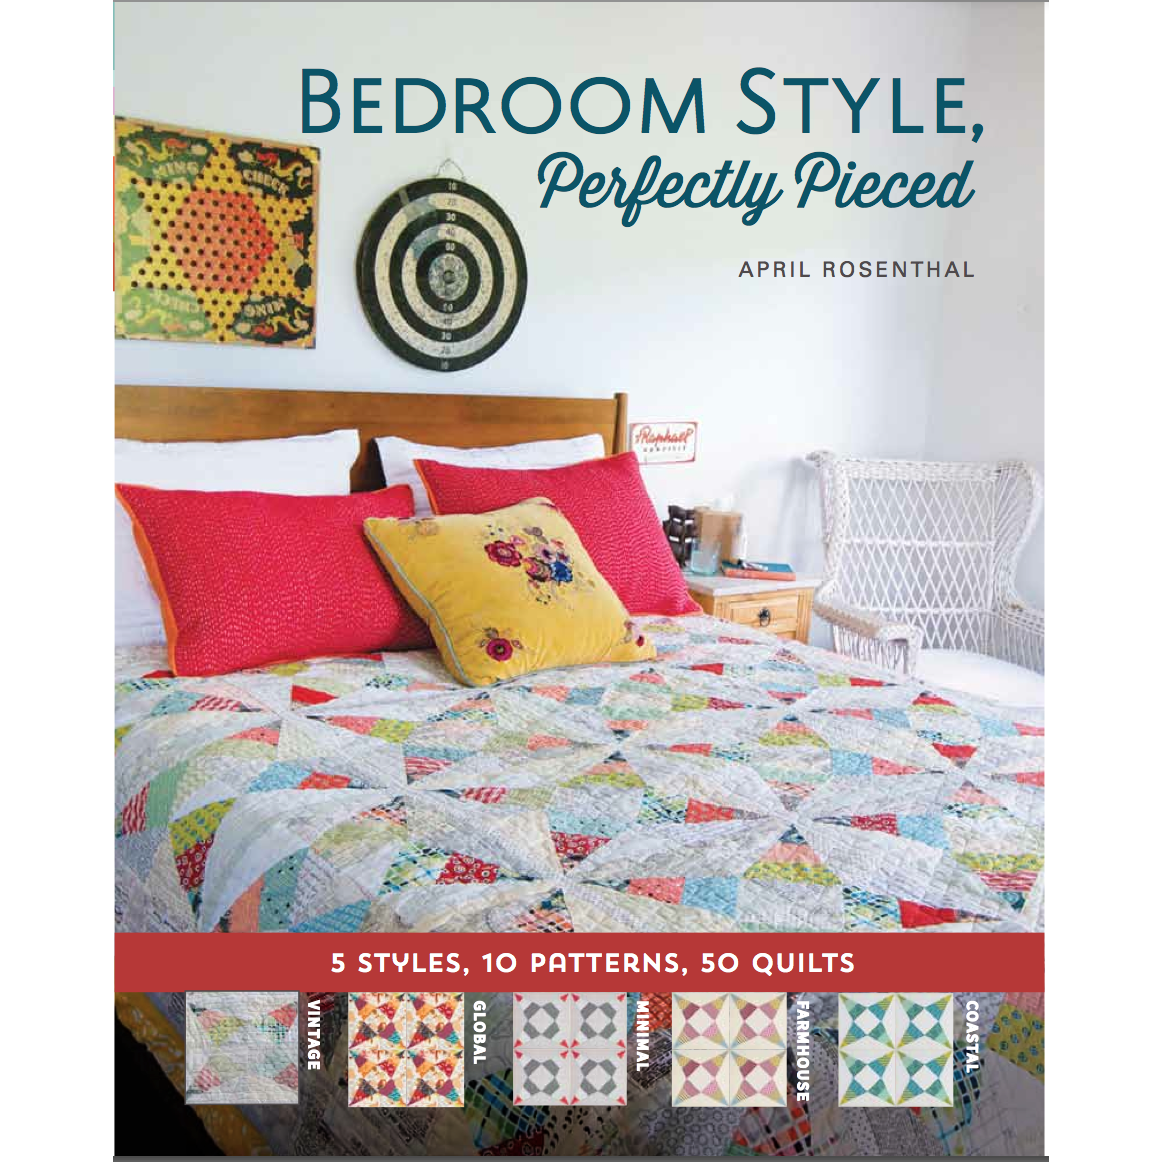 Bedroom Style, Perfectly Pieced